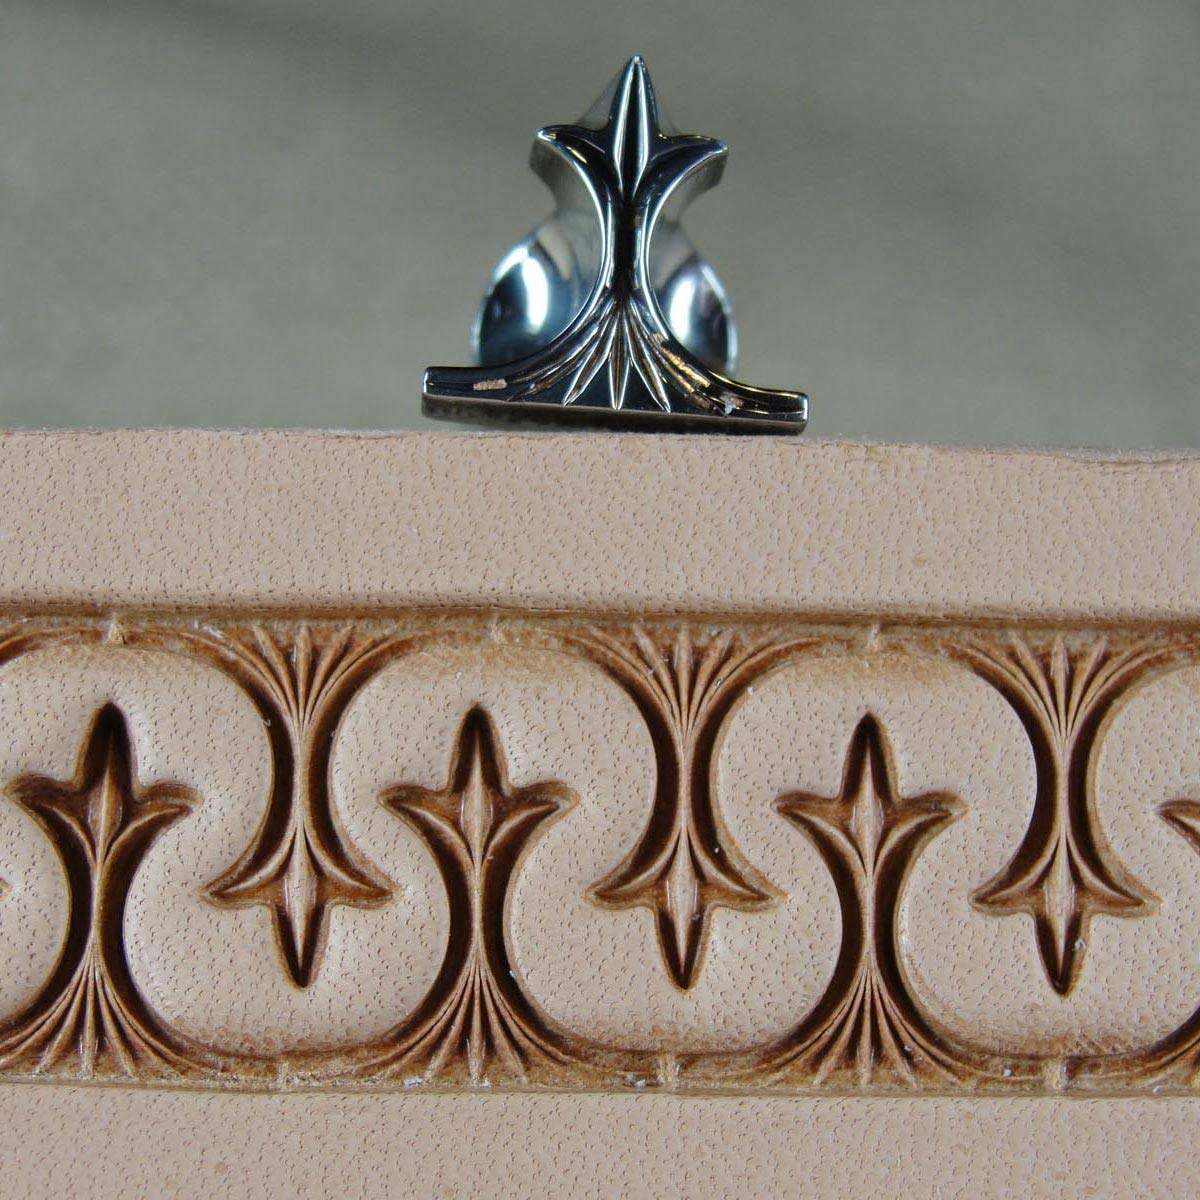 Stainless Steel Barry King - #3 Crown Serpentine Border Stamp (Leather Tool) by Pro Leather Carvers